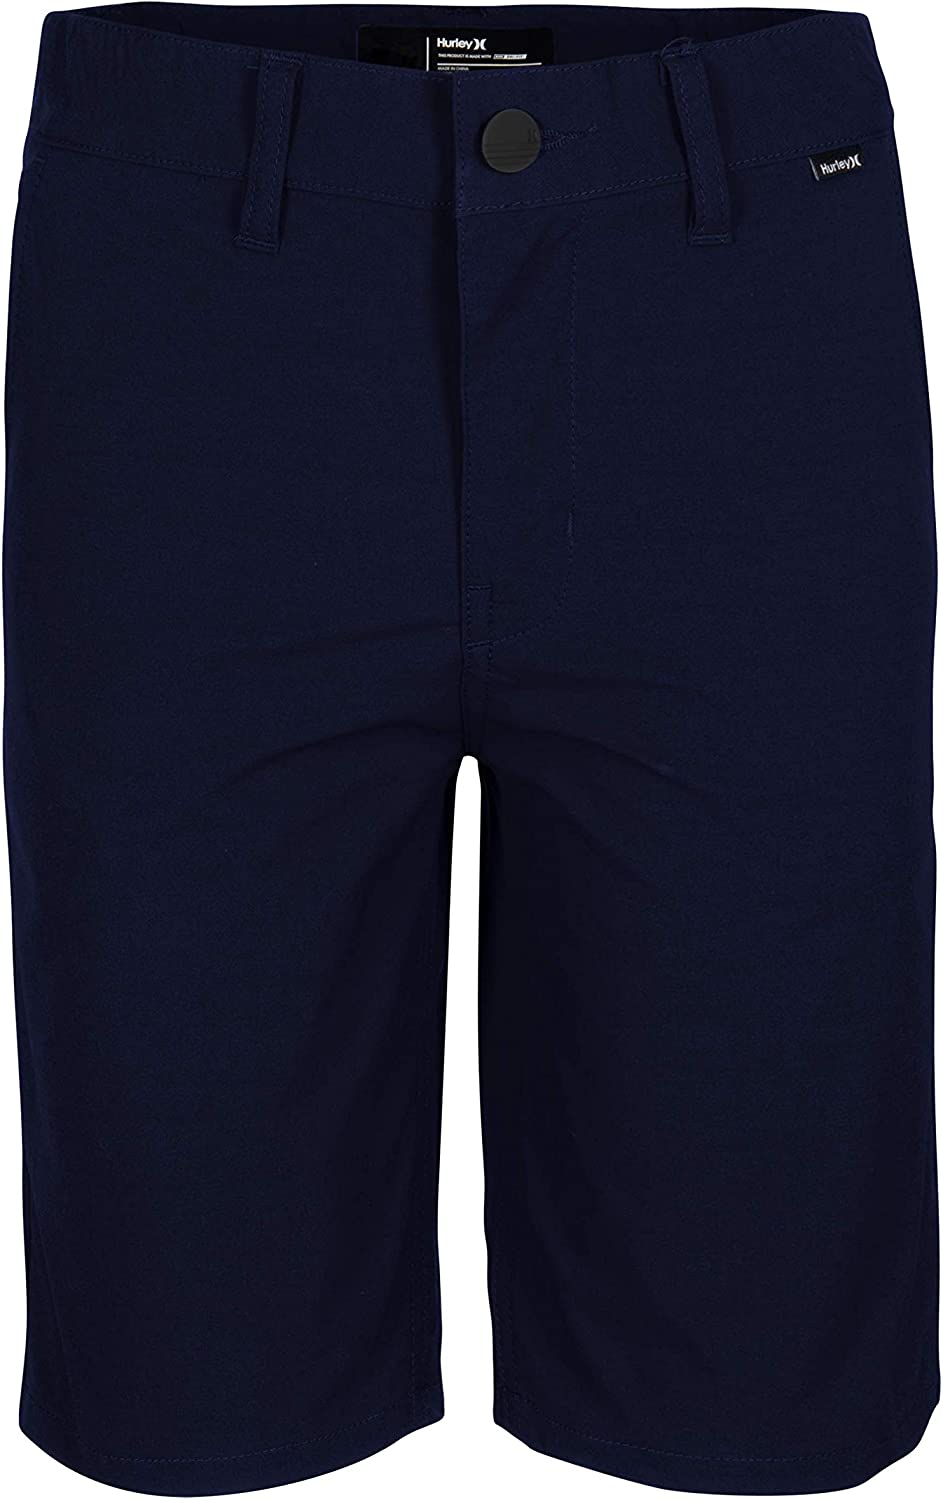 Hurley Chicago Mall Boys' Dri-fit Limited price sale Walk Shorts